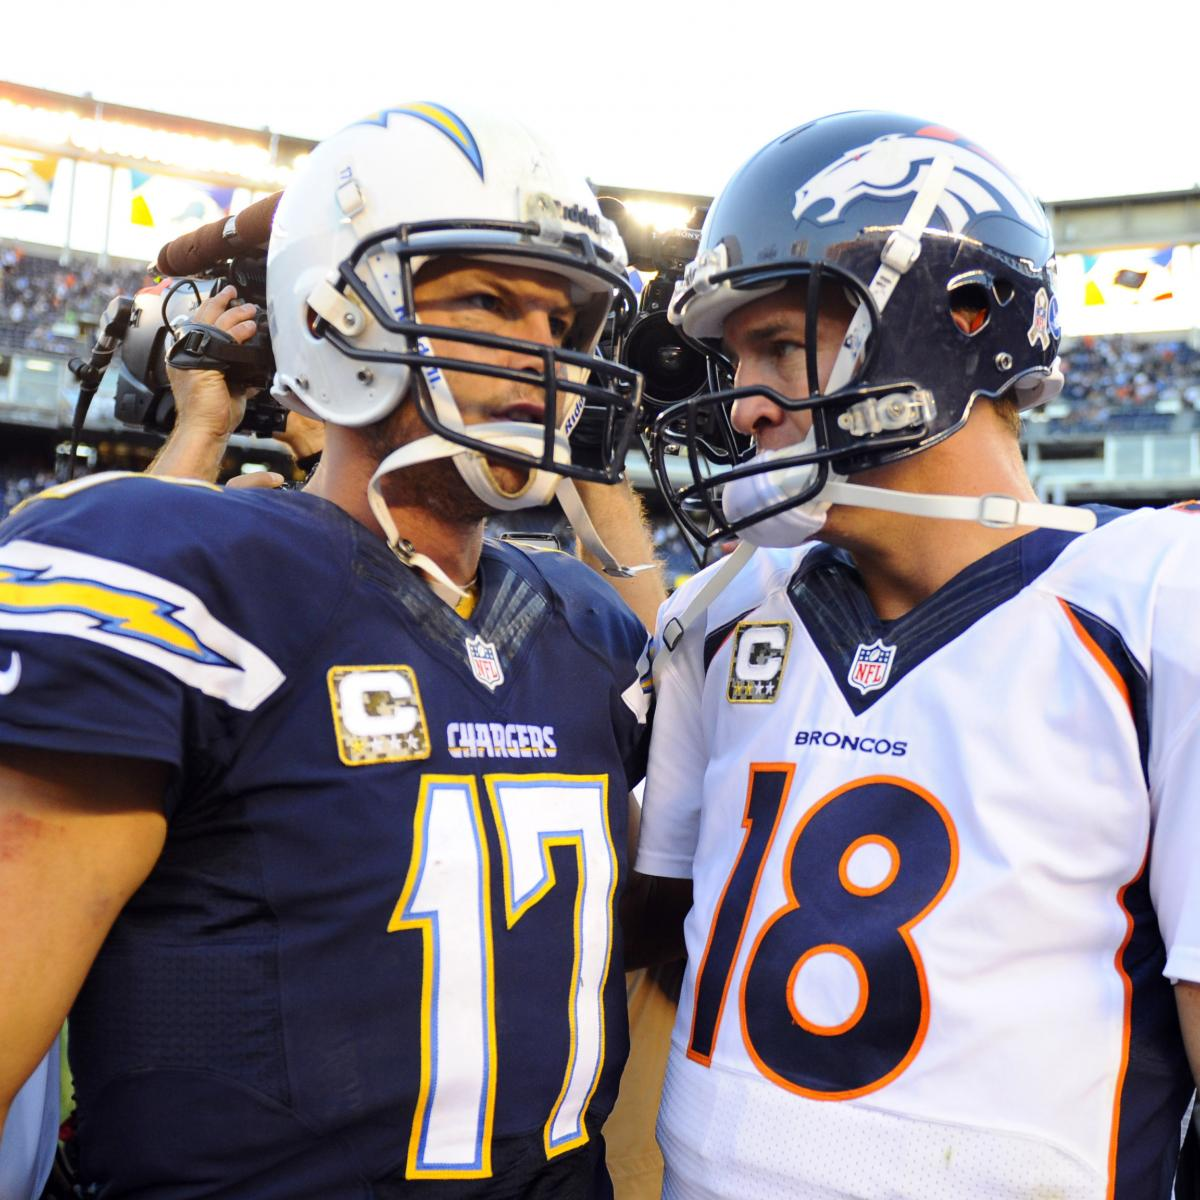 San Diego Chargers At Denver Broncos: San Diego Chargers Vs. Denver Broncos: 5 Storylines To